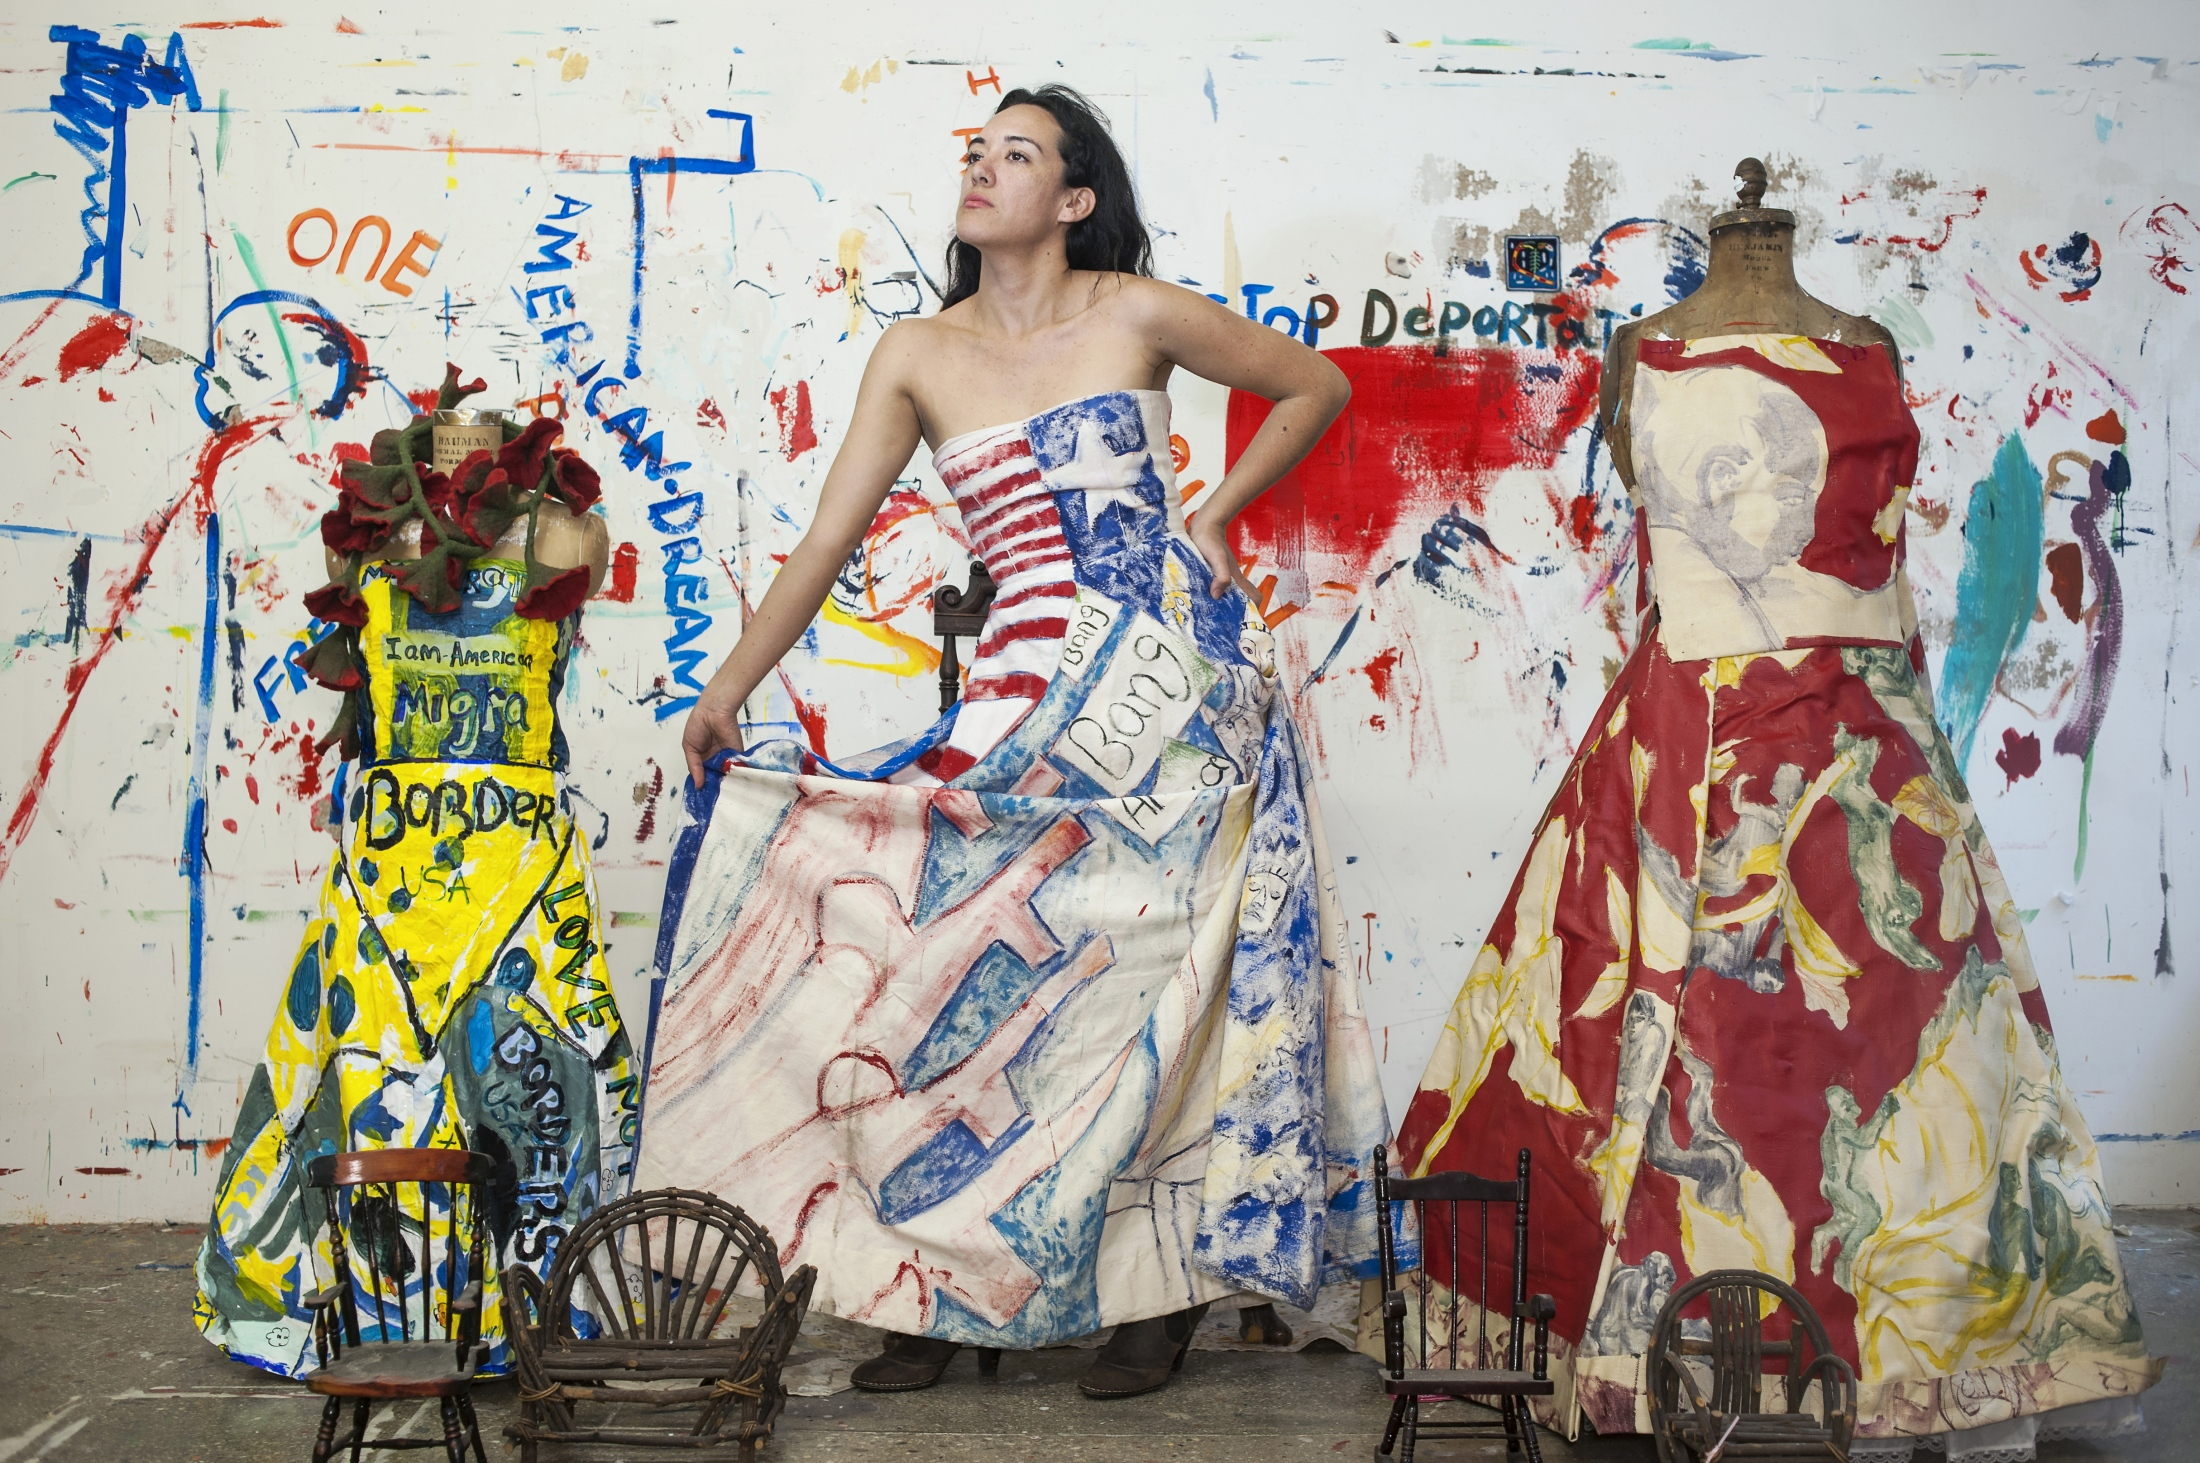 "Maria De Los Angeles is a Mexican American painter recognized for her painted dresses, which are wearable portraits of human displacement and the immigrant experience. Educated at Pratt and Yale, she is an undocumented immigrant smuggled across the border to California when she was eleven. She could not vote in this election due to her DACA status but said she would have voted for Bernie Sanders. She got her DACA status renewed for two more years in July. She has been making dresses since around February 2016, the beginning of the election campaign, interested in the confrontational aspect of wearing stereotypes on one's body. She uses acrylics, painting abstract scenes of migration to look like landscapes, or at other times writing overt commentary on deportation. ""I wanted to create a more nuanced portrait of immigrants,"" she said. ""And also place myself in my work."""